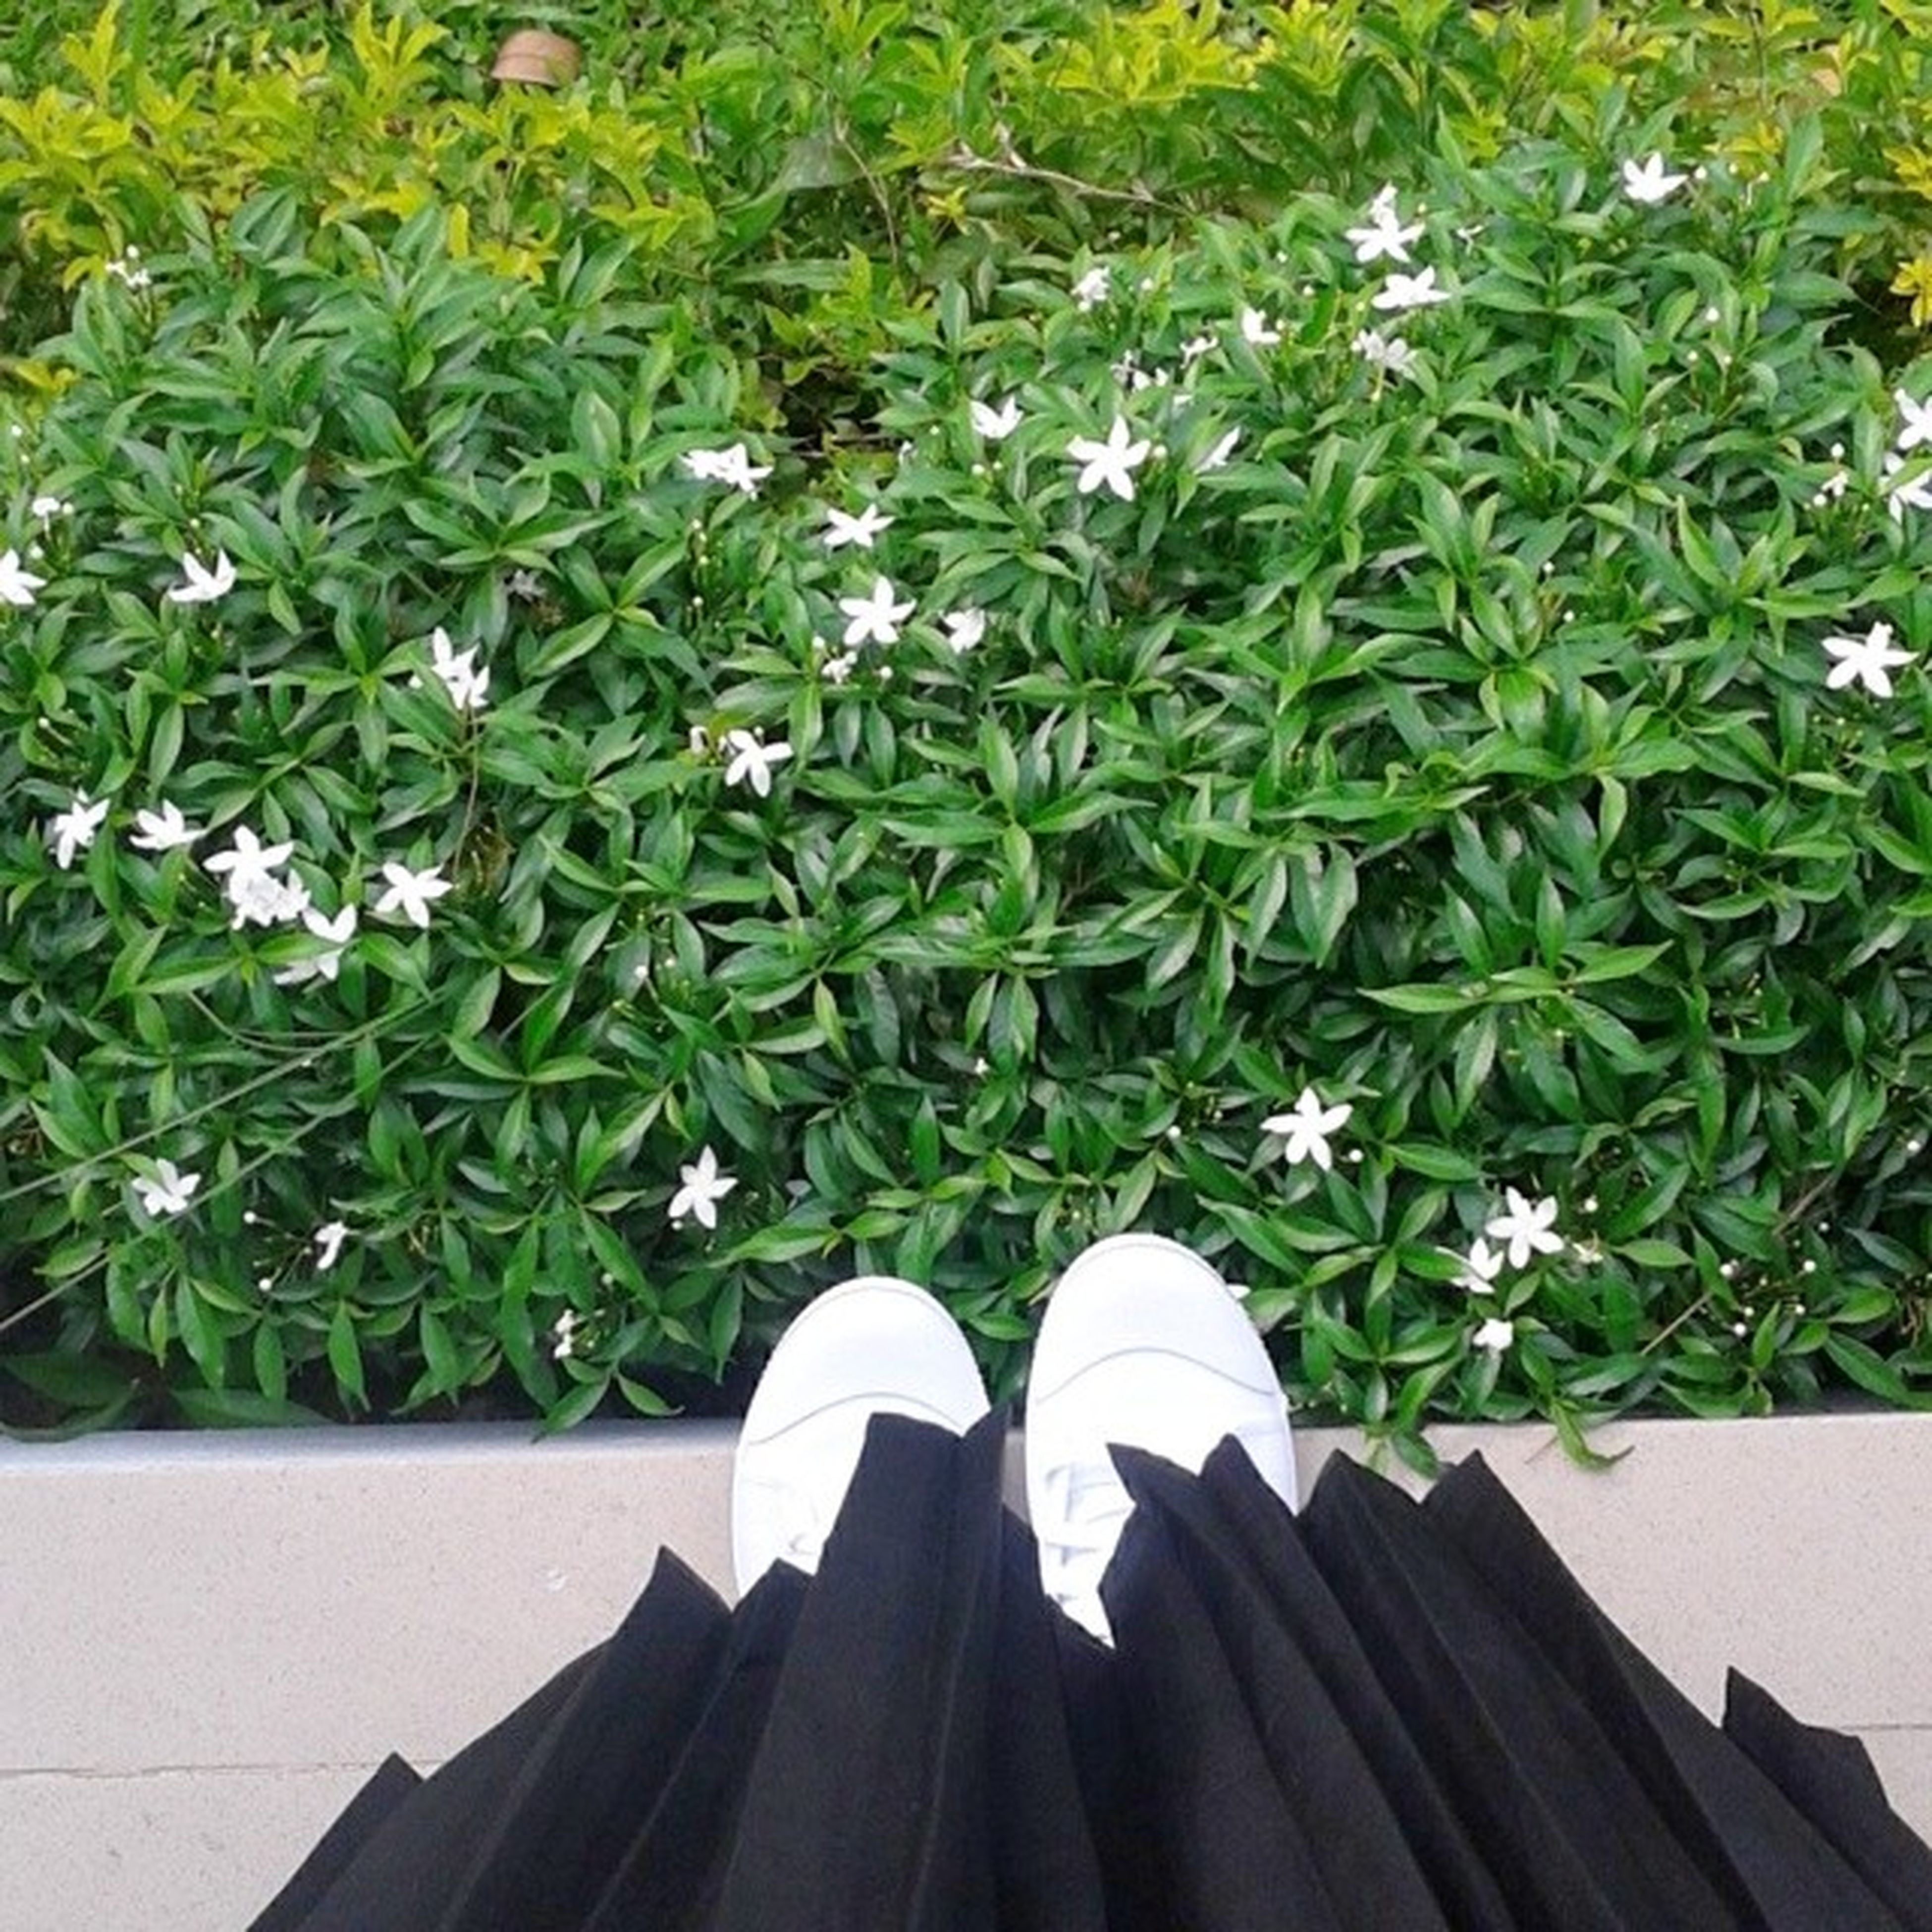 growth, plant, flower, high angle view, leaf, white color, green color, freshness, nature, potted plant, day, beauty in nature, outdoors, no people, fragility, wood - material, sunlight, petal, park - man made space, bench